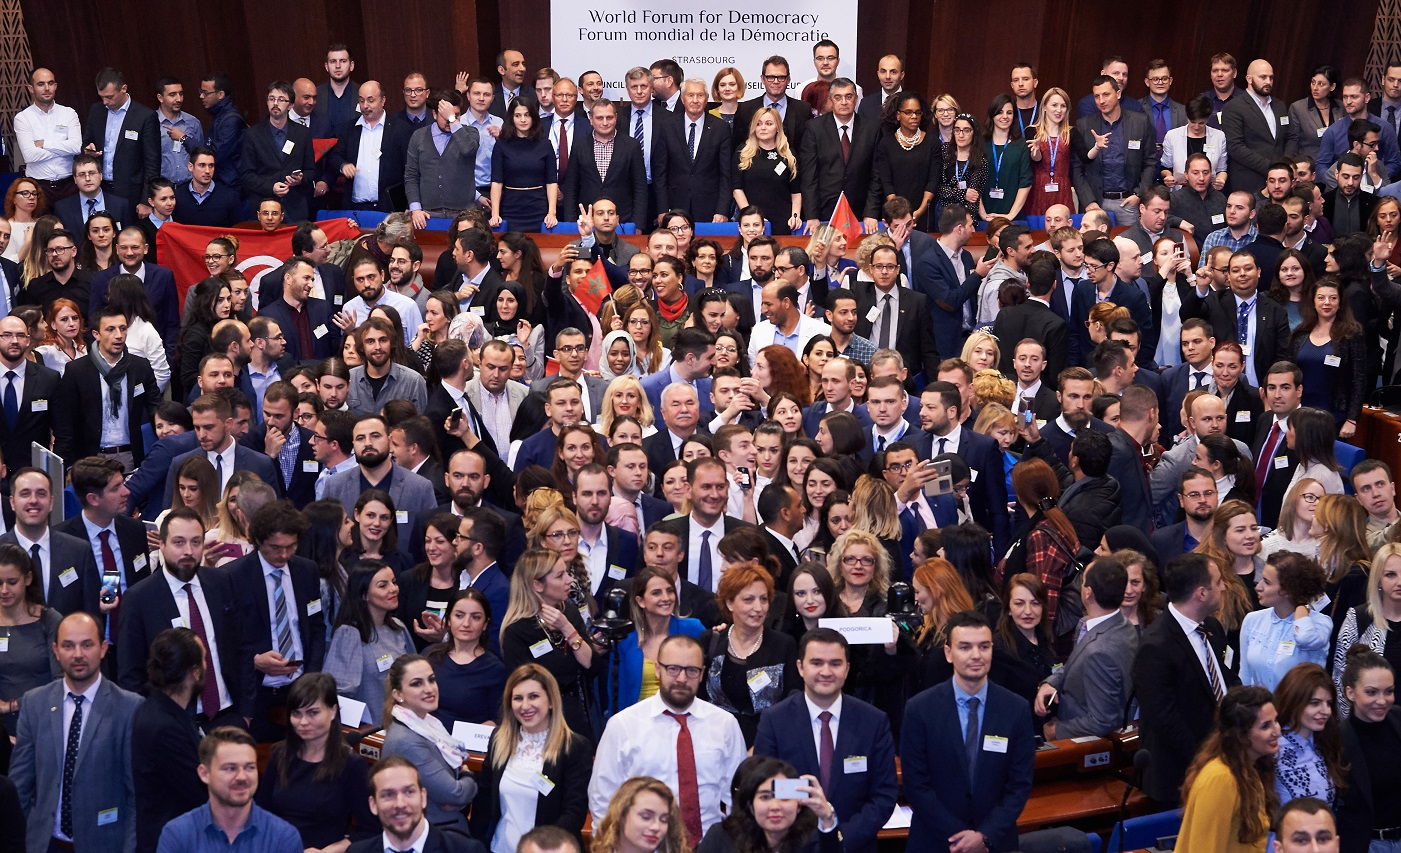 Schools of Political Studies at World Forum for Democracy 2017